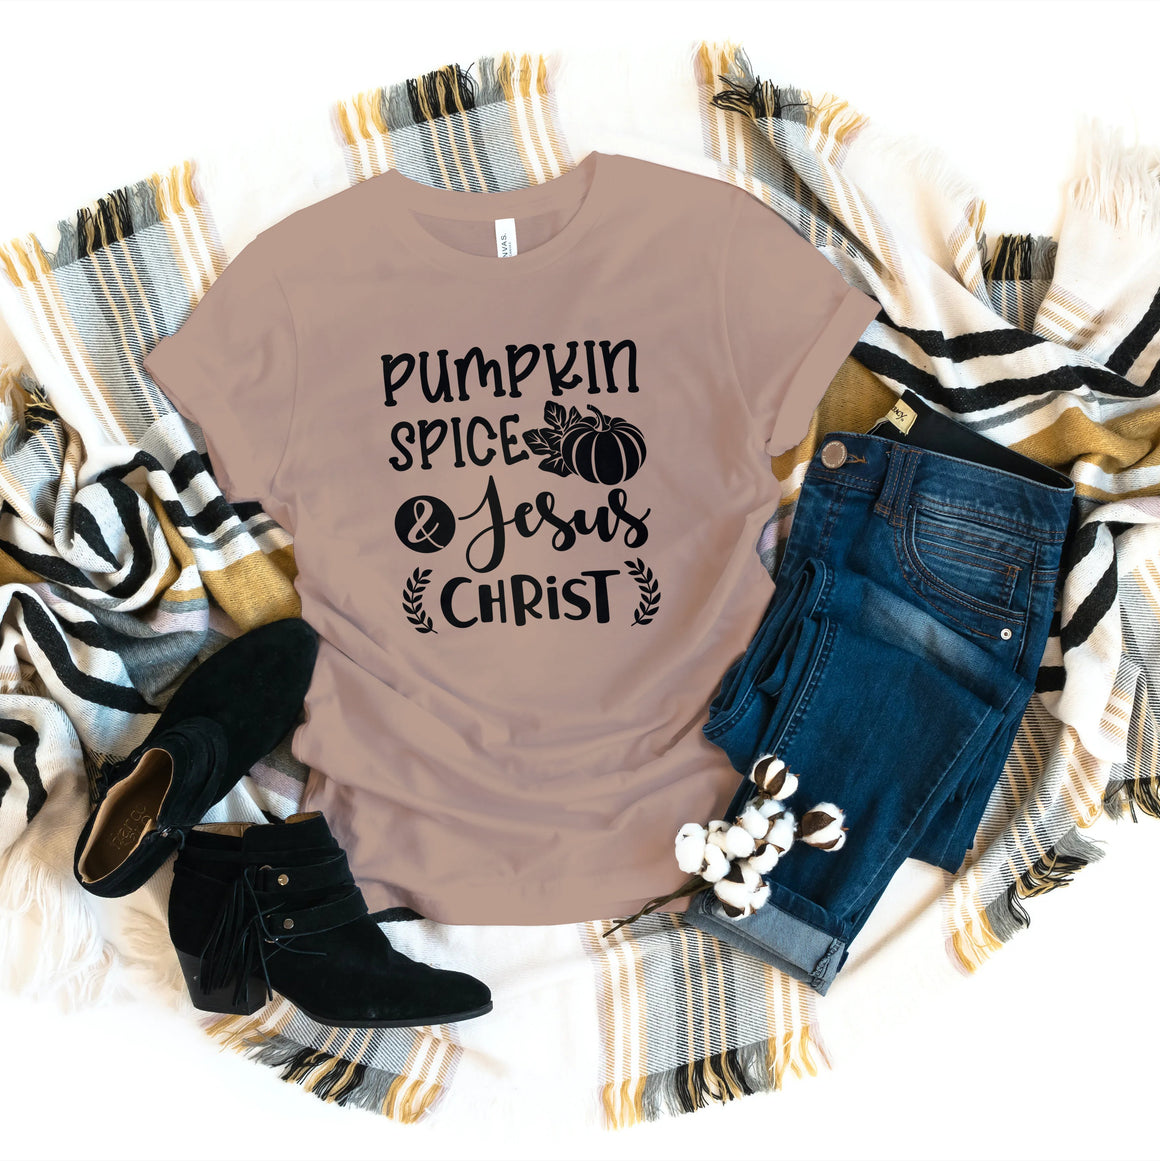 PUMPKIN SPICE AND JESUS CHRIST T-SHIRT - Gray's Active Wear Printing